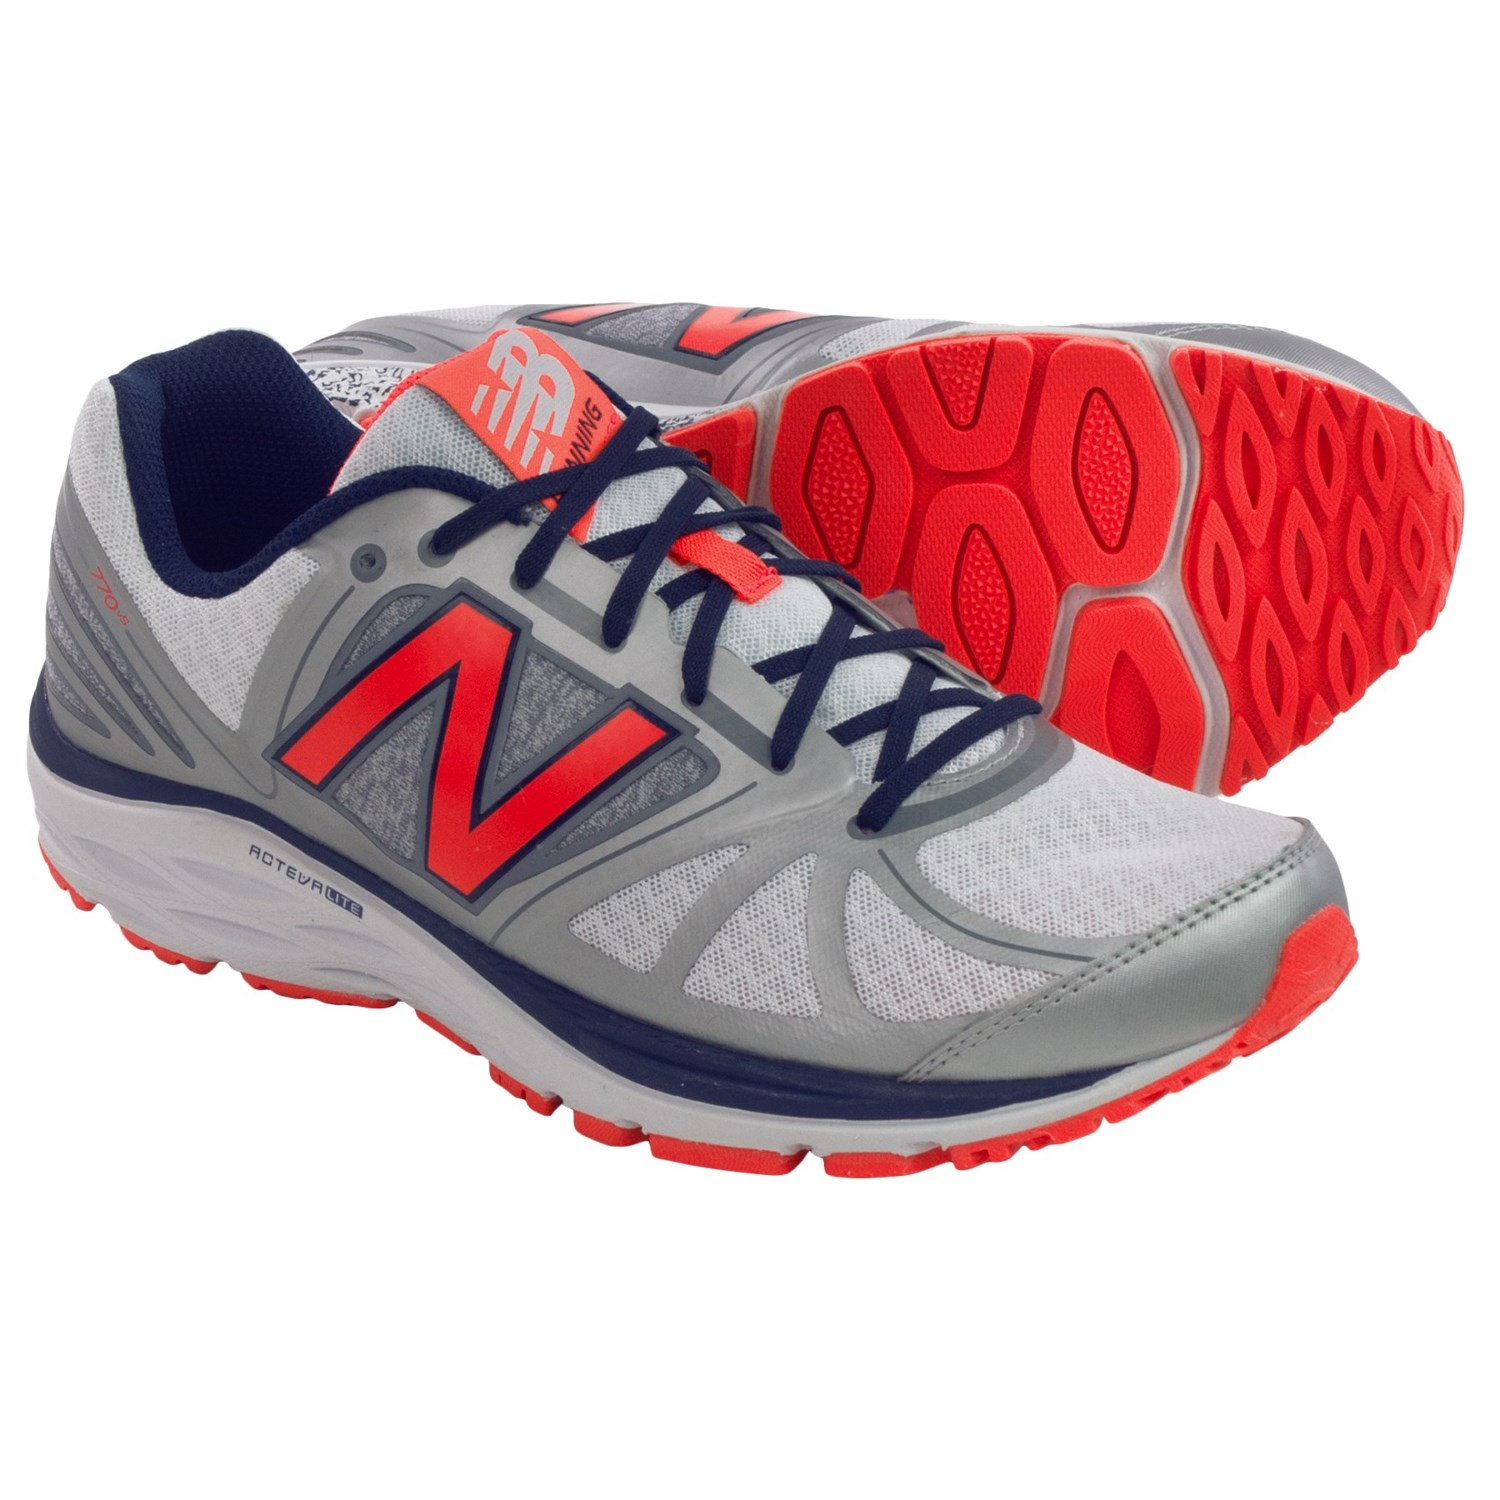 new balance 770v5 running shoes for men save 35. Black Bedroom Furniture Sets. Home Design Ideas